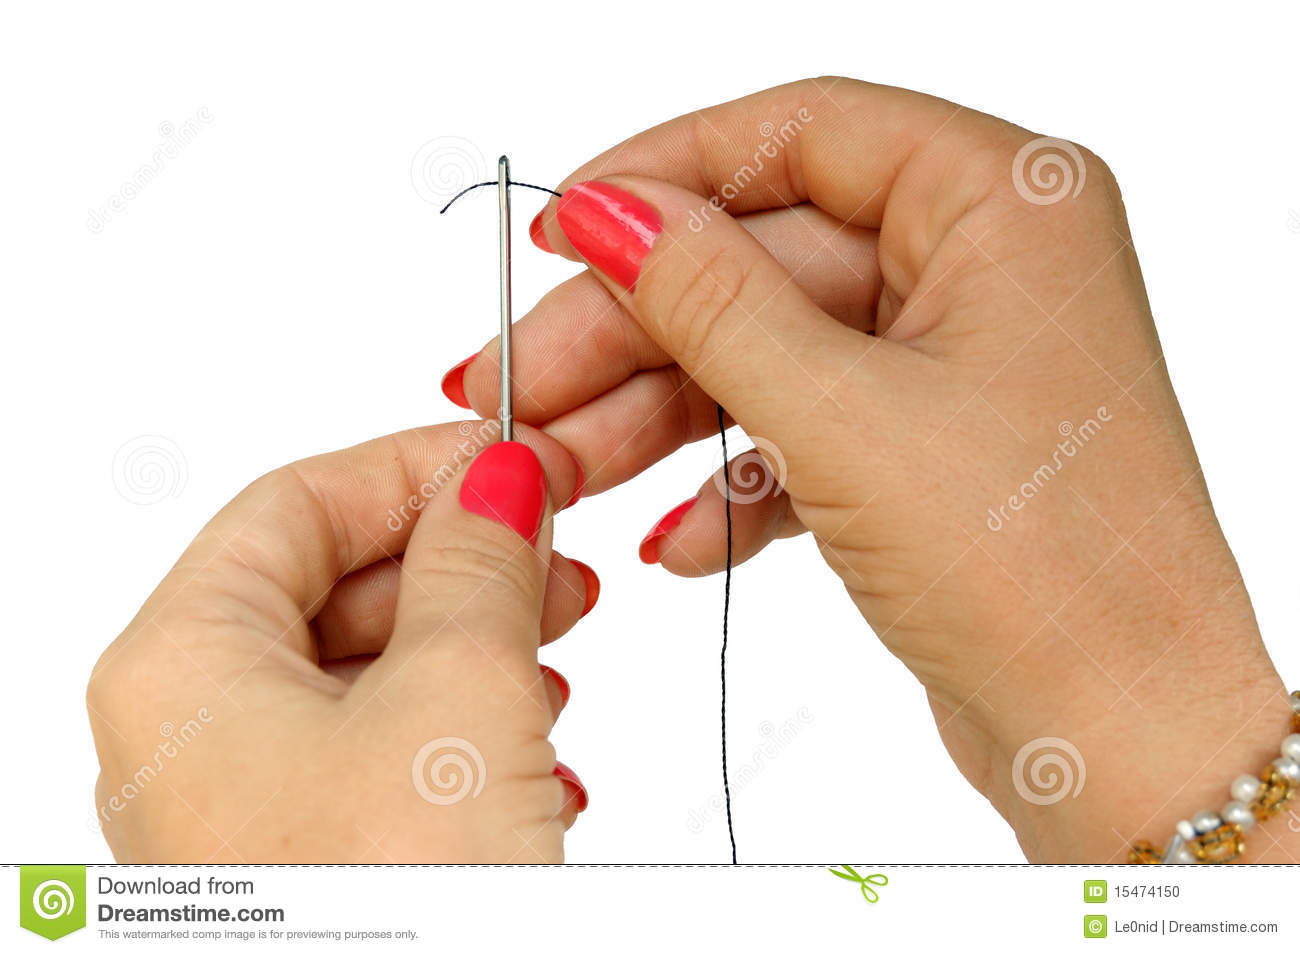 how to put thread in a needle